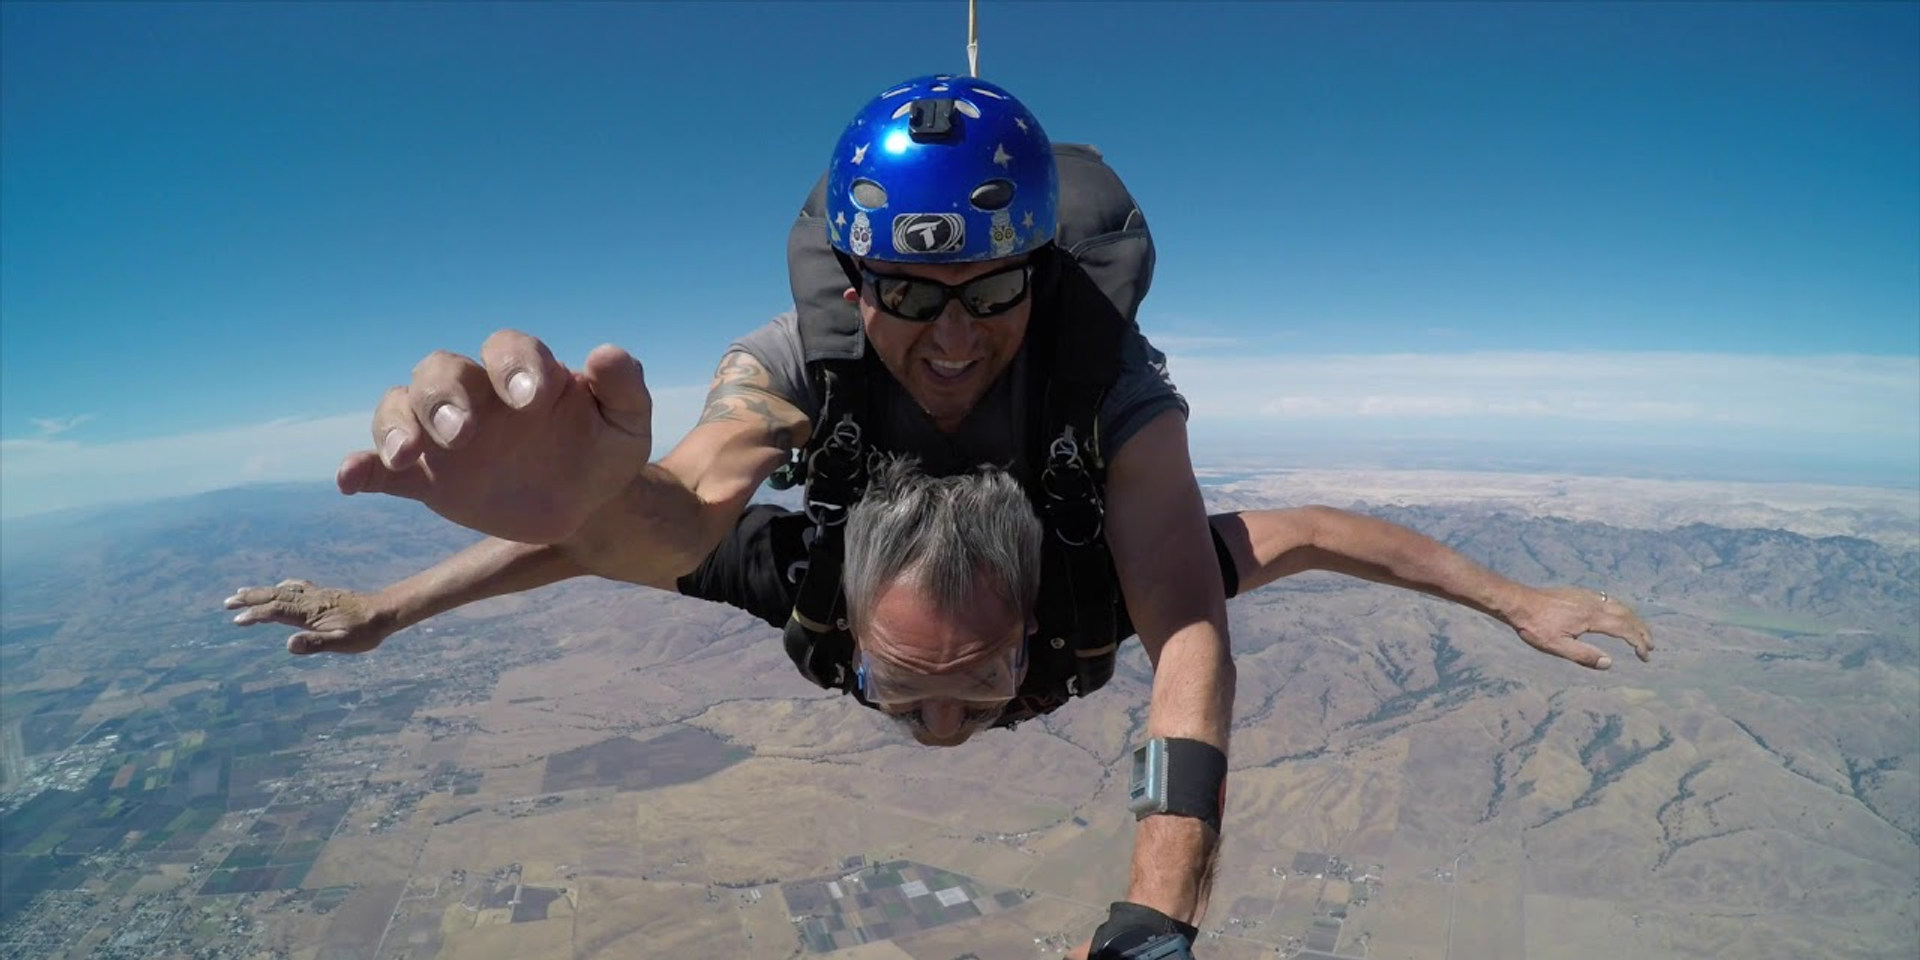 Oswaldo's June 2019 First Tandem Skydive in Hollister